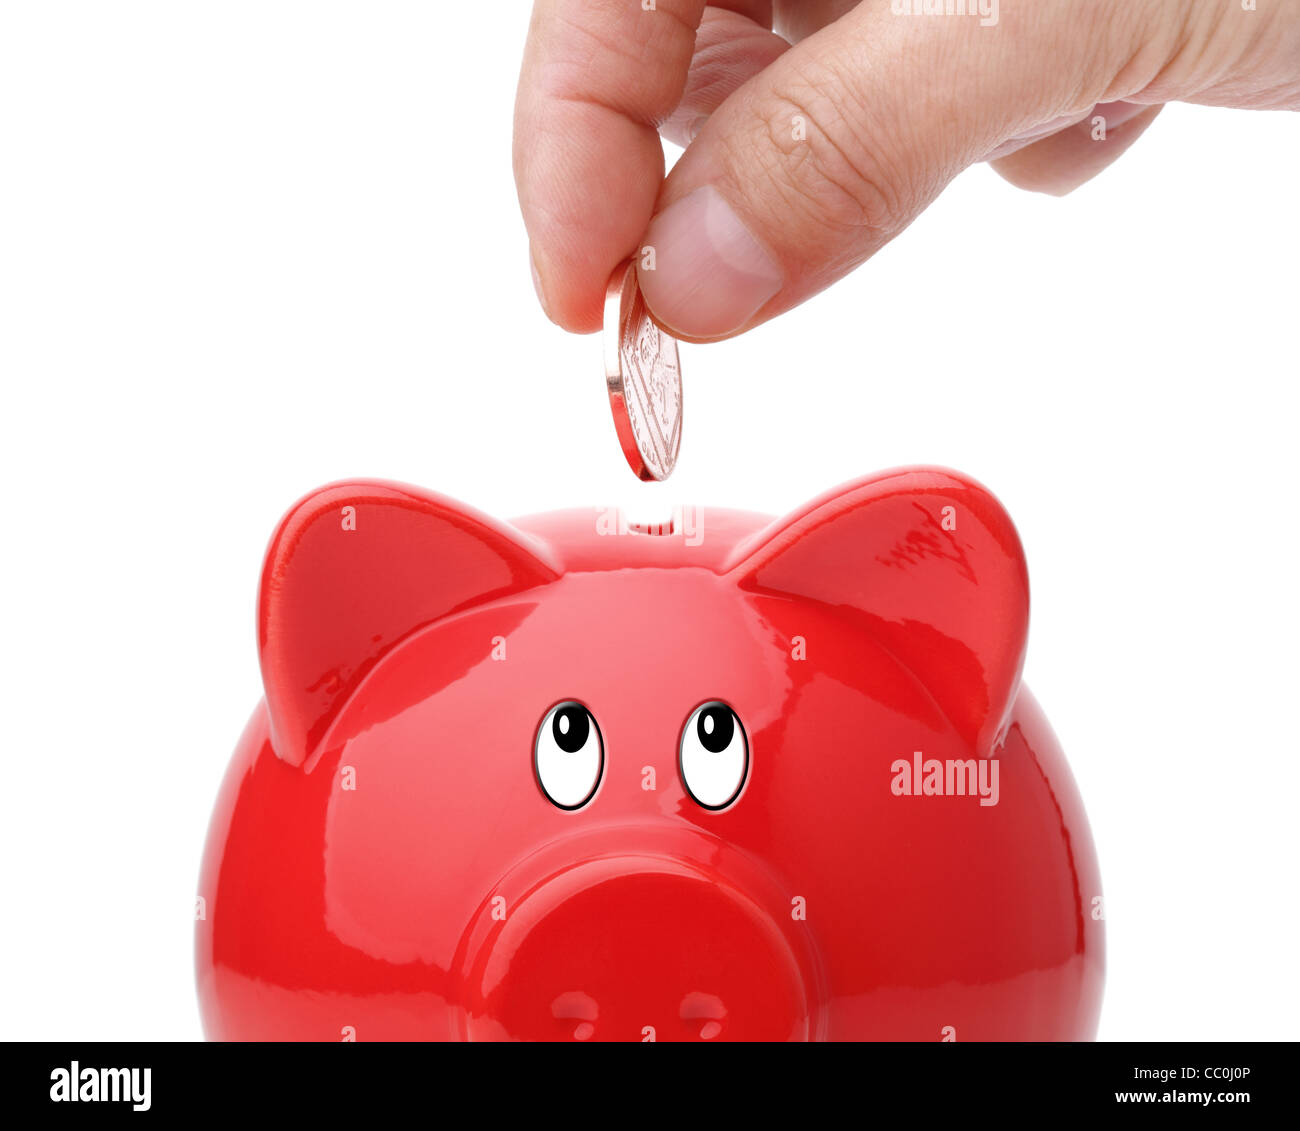 Inserting coin into a piggy bank - Stock Image